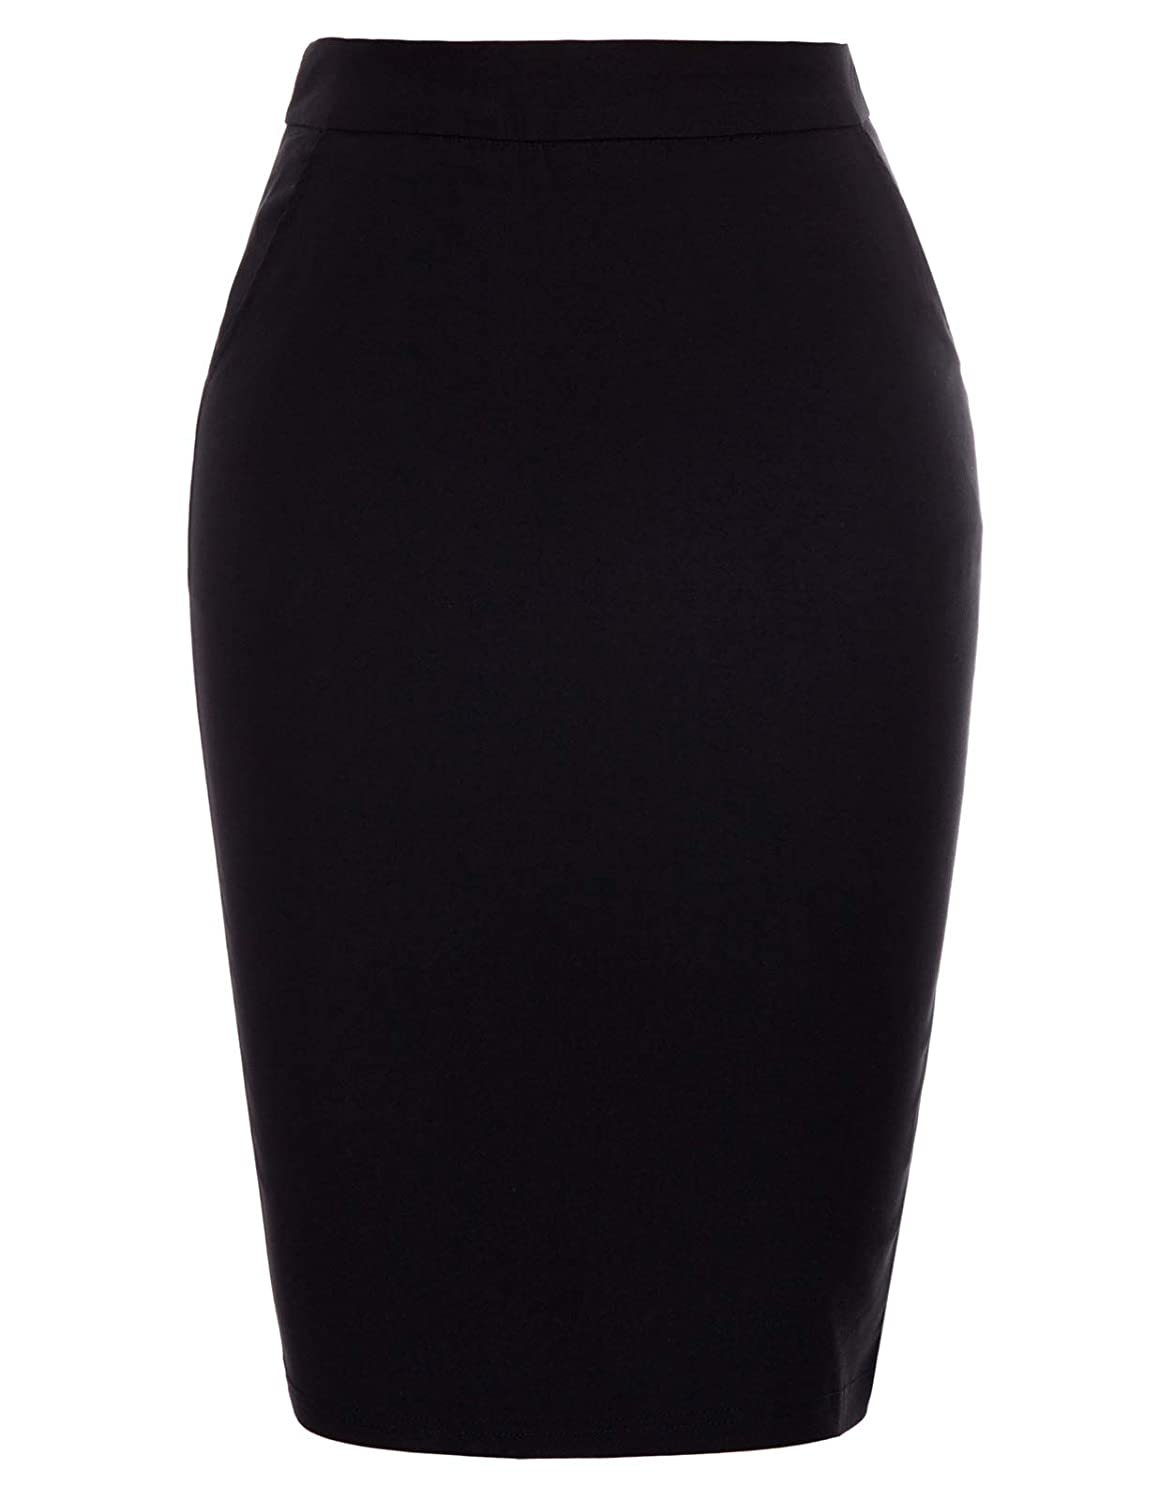 a566c7c2d13 Kate Kasin Women s Stretchy Cotton Pencil Skirt Slim Fit Business Skirts at Amazon  Women s Clothing store